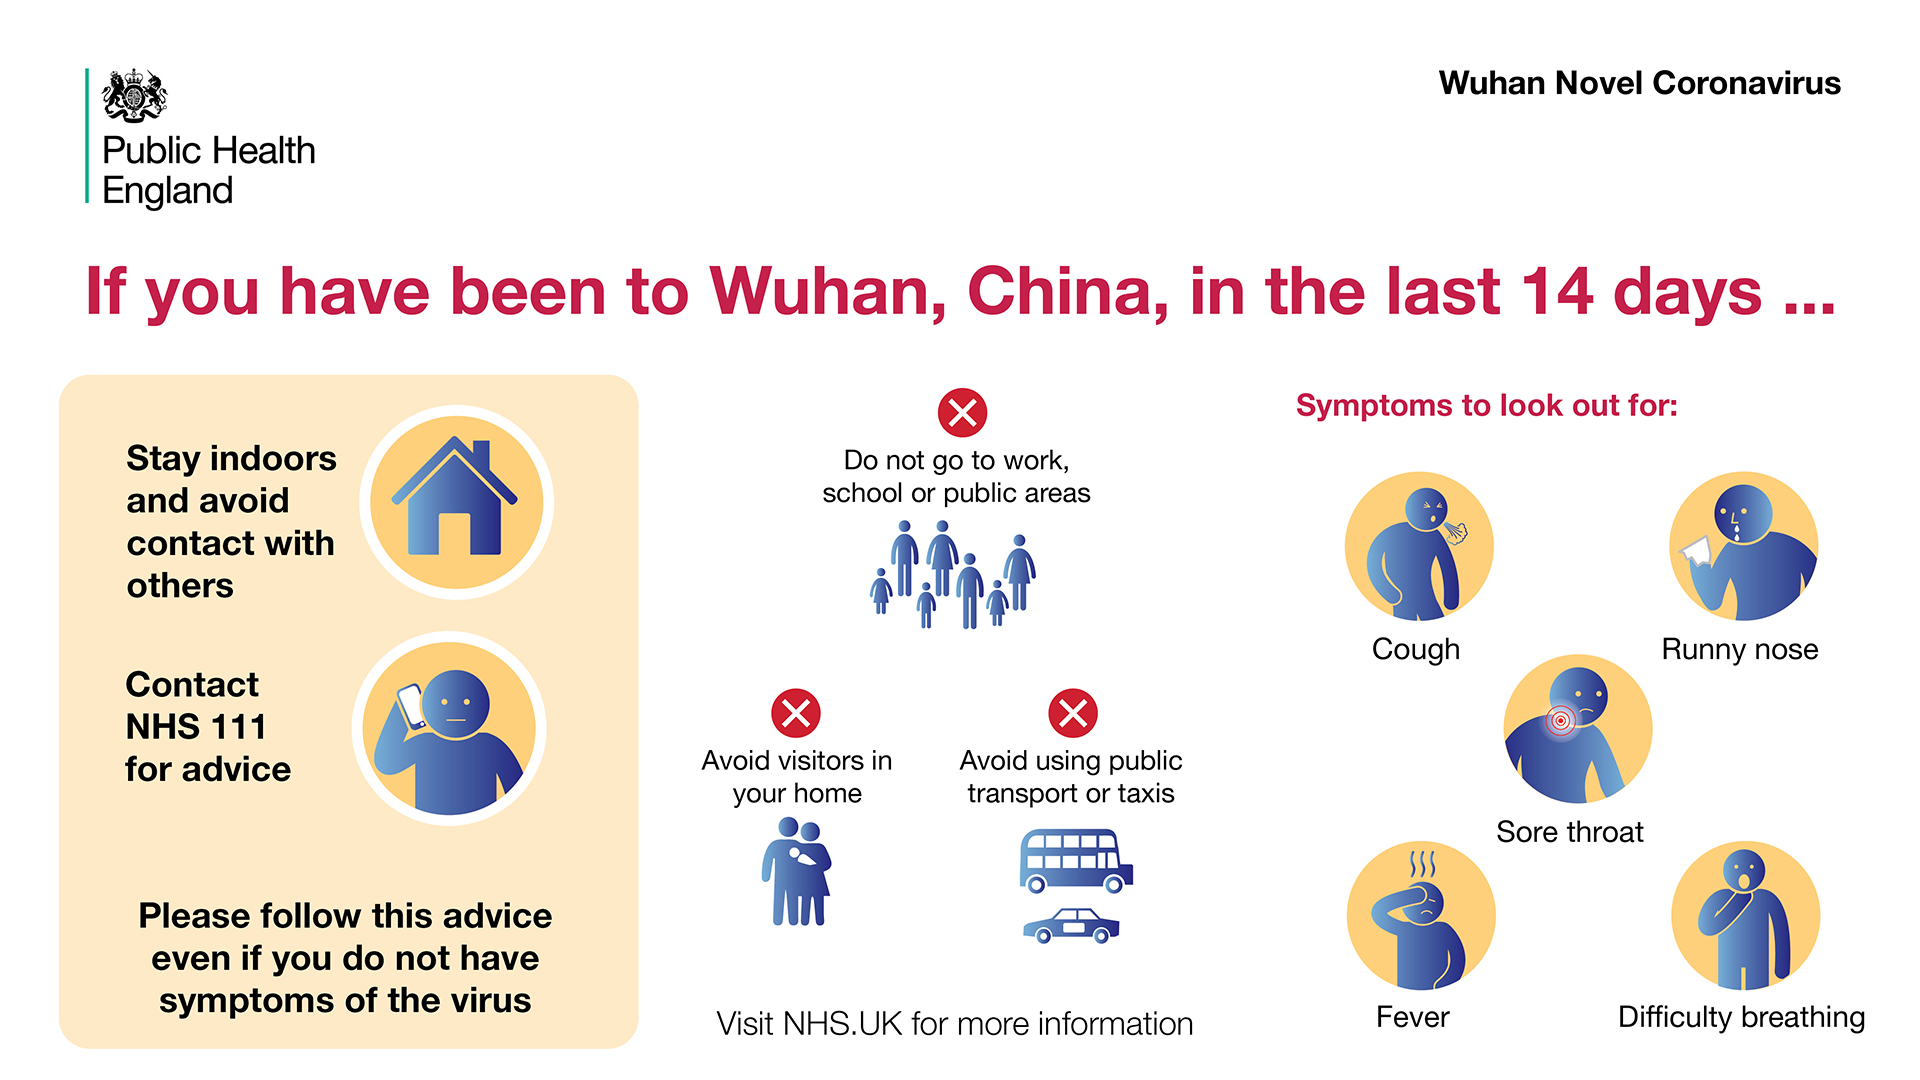 If you have been to Wuhan, China, in the last 14 days.... Stay indoors and avoid contact with others.  Contact NHS 111 for advice.  Please follow this advice even if you do not have symptoms of the virus.  Do not go to work, school or publica areas.  Avoid visitors in your home.  Avoid using public transport or taxis. Symptoms to look out for: Cough, runny nose, sore throat, fever, difficulty breathing.  Visit www.nhs.uk for more information